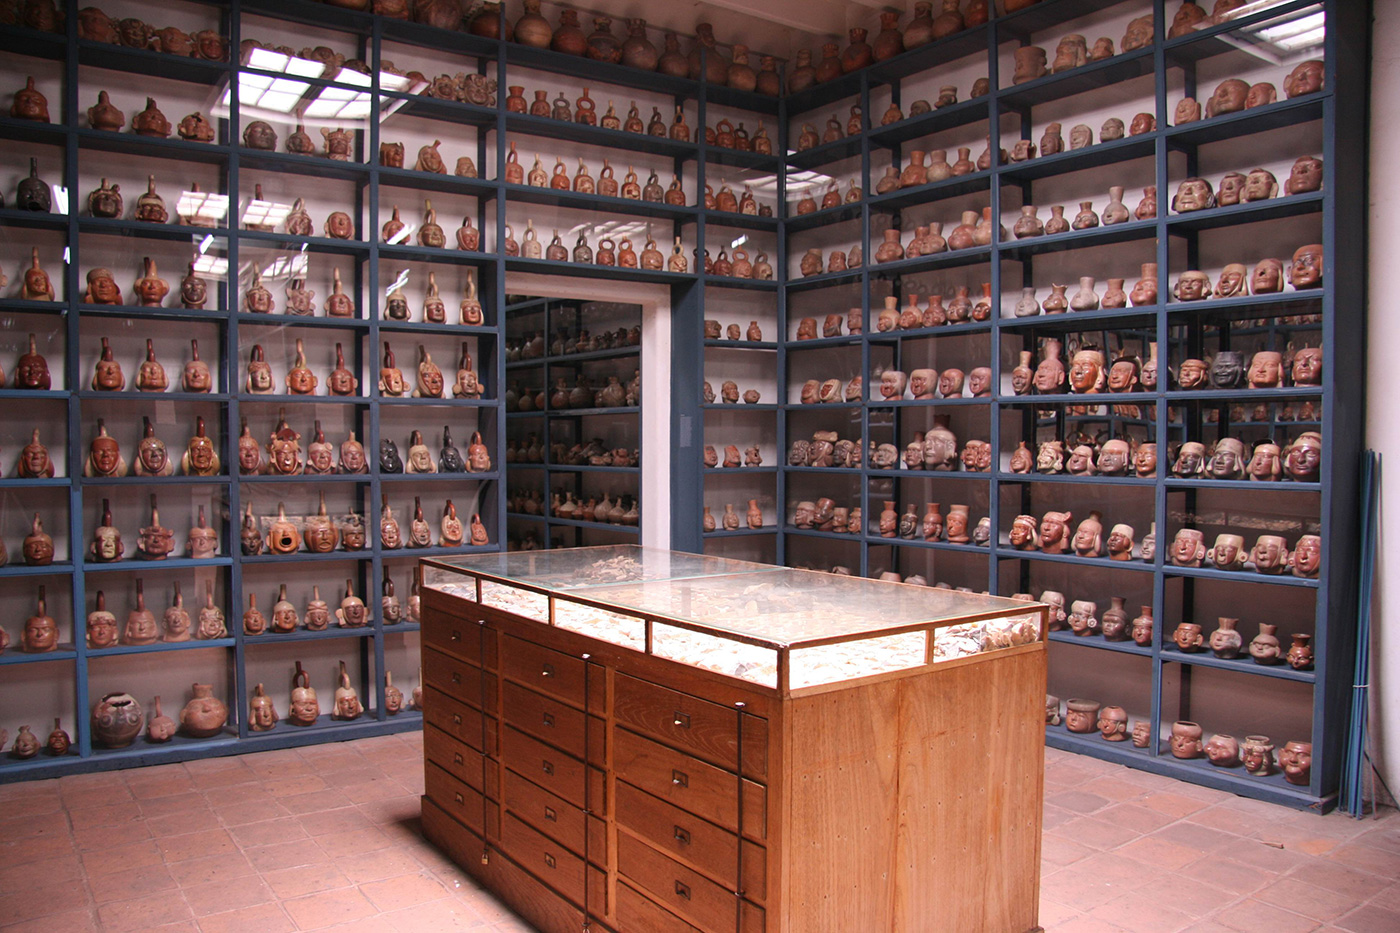 Pictured is the storage gallery of the Larco Museum.